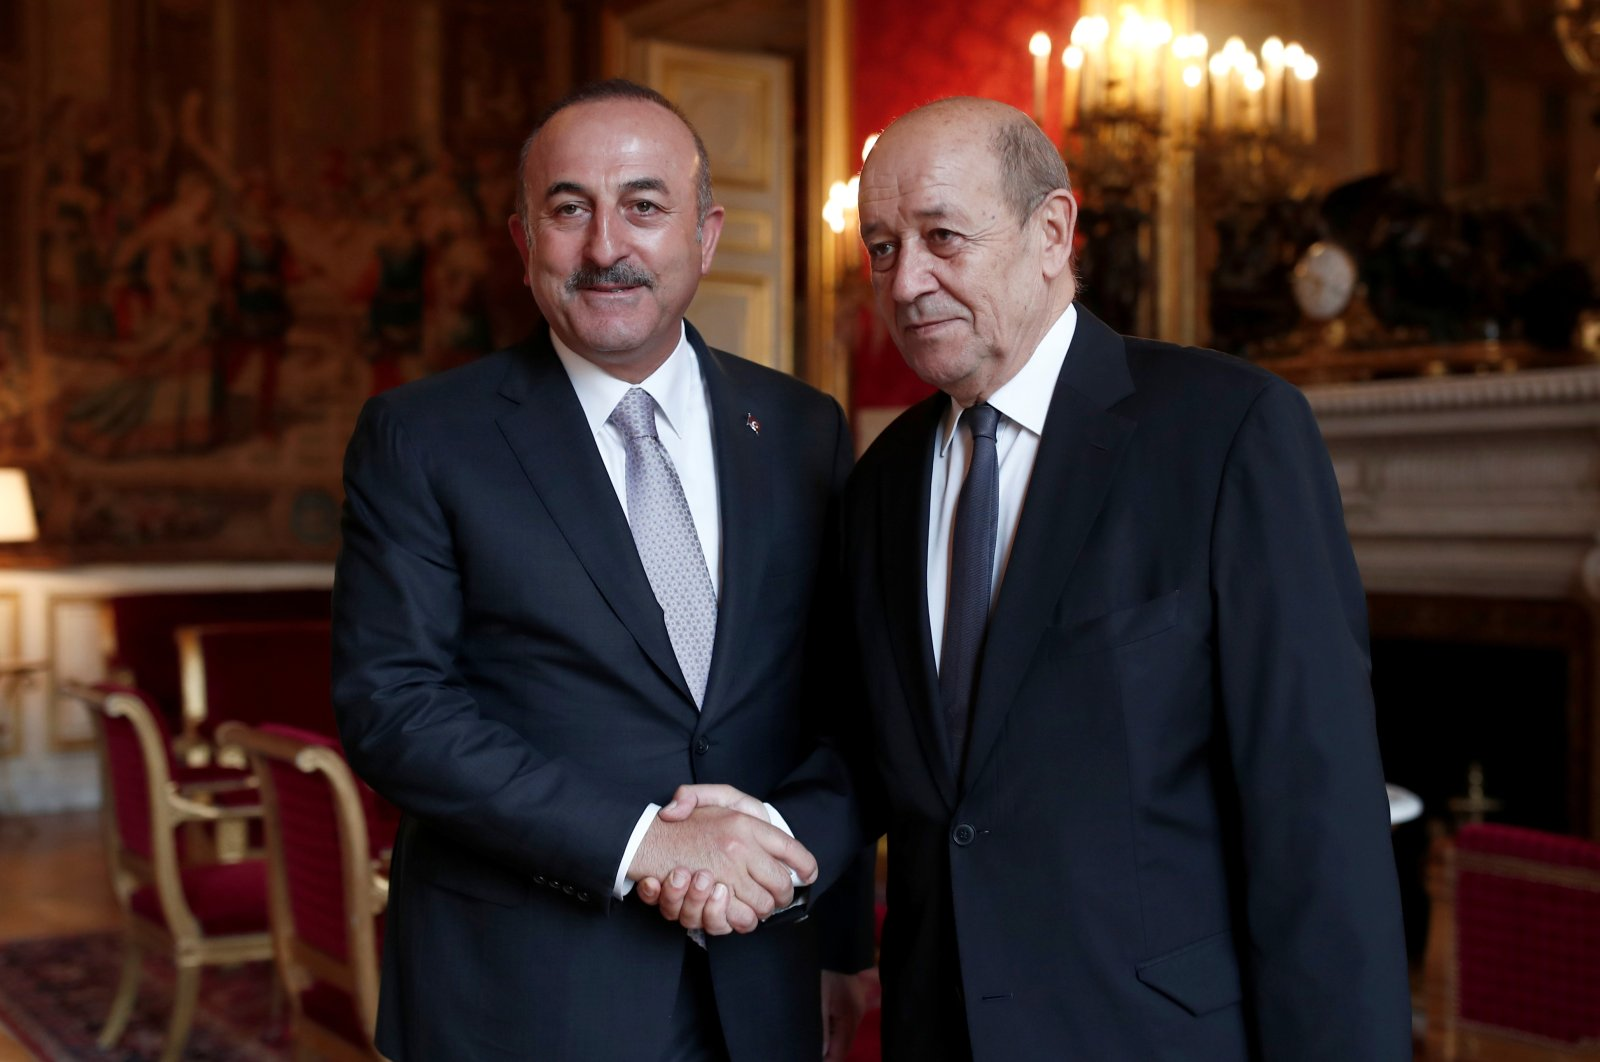 French Minister for Foreign Affairs Jean Yves Le Drian (R) and his Turkish counterpart Mevlüt Çavuşoğlu, pose for the media prior to their bilateral meeting at the Quai d'Orsay in Paris, France, September 30, 2018. (Reuters File Photo)